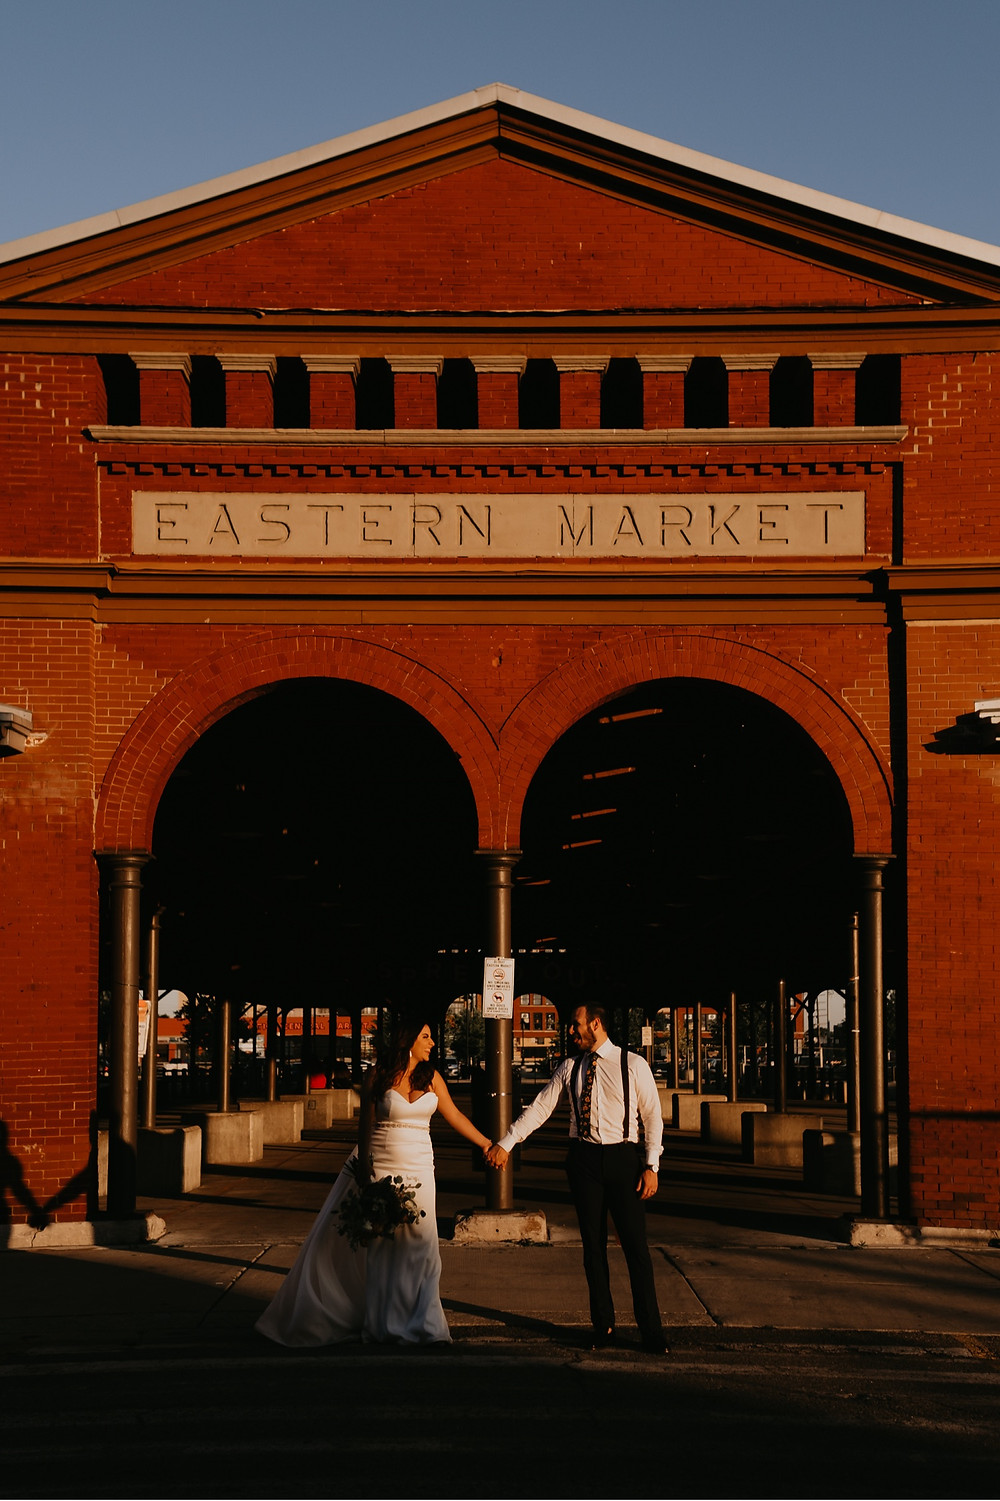 Eastern Market in Detroit, Michigan. Photographed by Nicole Leanne Photography.